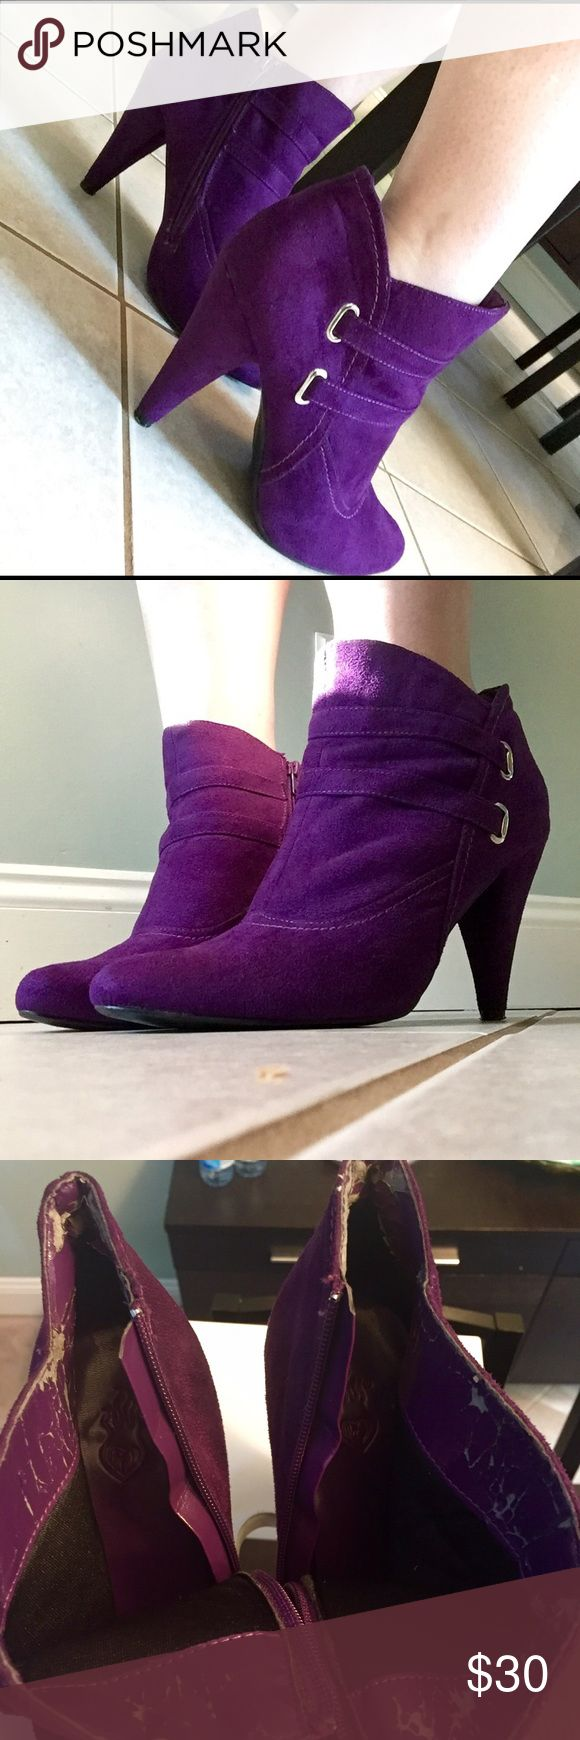 💕💜💘HOST PICK! Purple Ankle Booties. SO CUTE💜💕 I am totally in love with these boots. They were marked as babyphat at the consignment boutique. I'm not convinced. They are a suede-like bright purple microfiber. Excellent condition. A little wear on the heels and soles and just a bit of the interior is made of a pleather that is flaking off. No one will notice that on your feet, of course. Probably a size 9.5 or 10. 💜💘💜 Shoes Ankle Boots & Booties